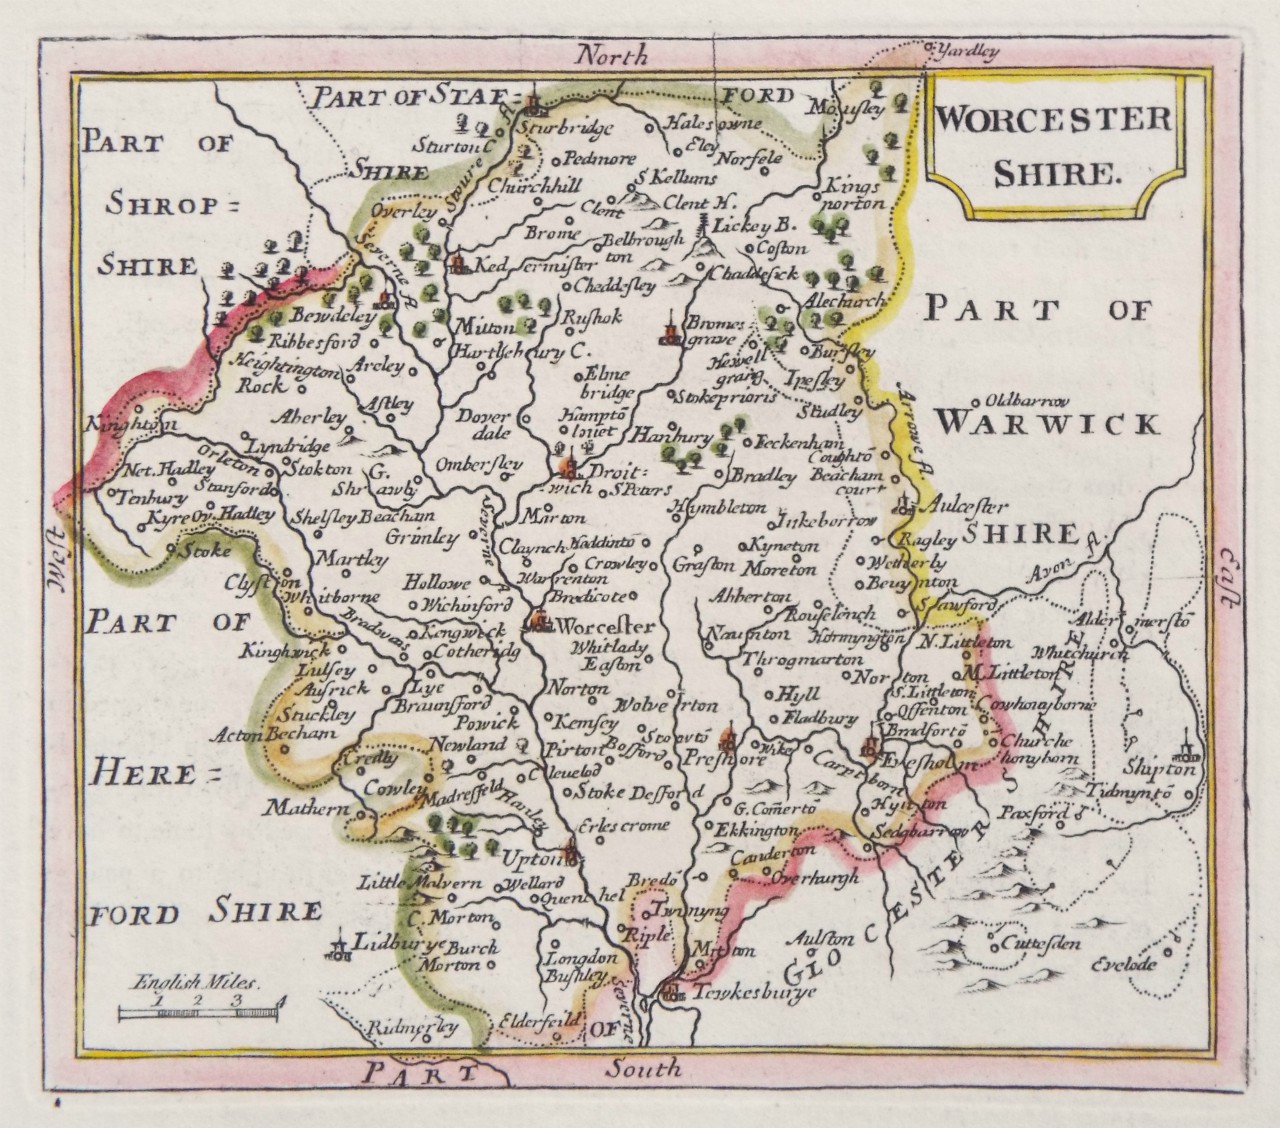 Map of Worcestershire